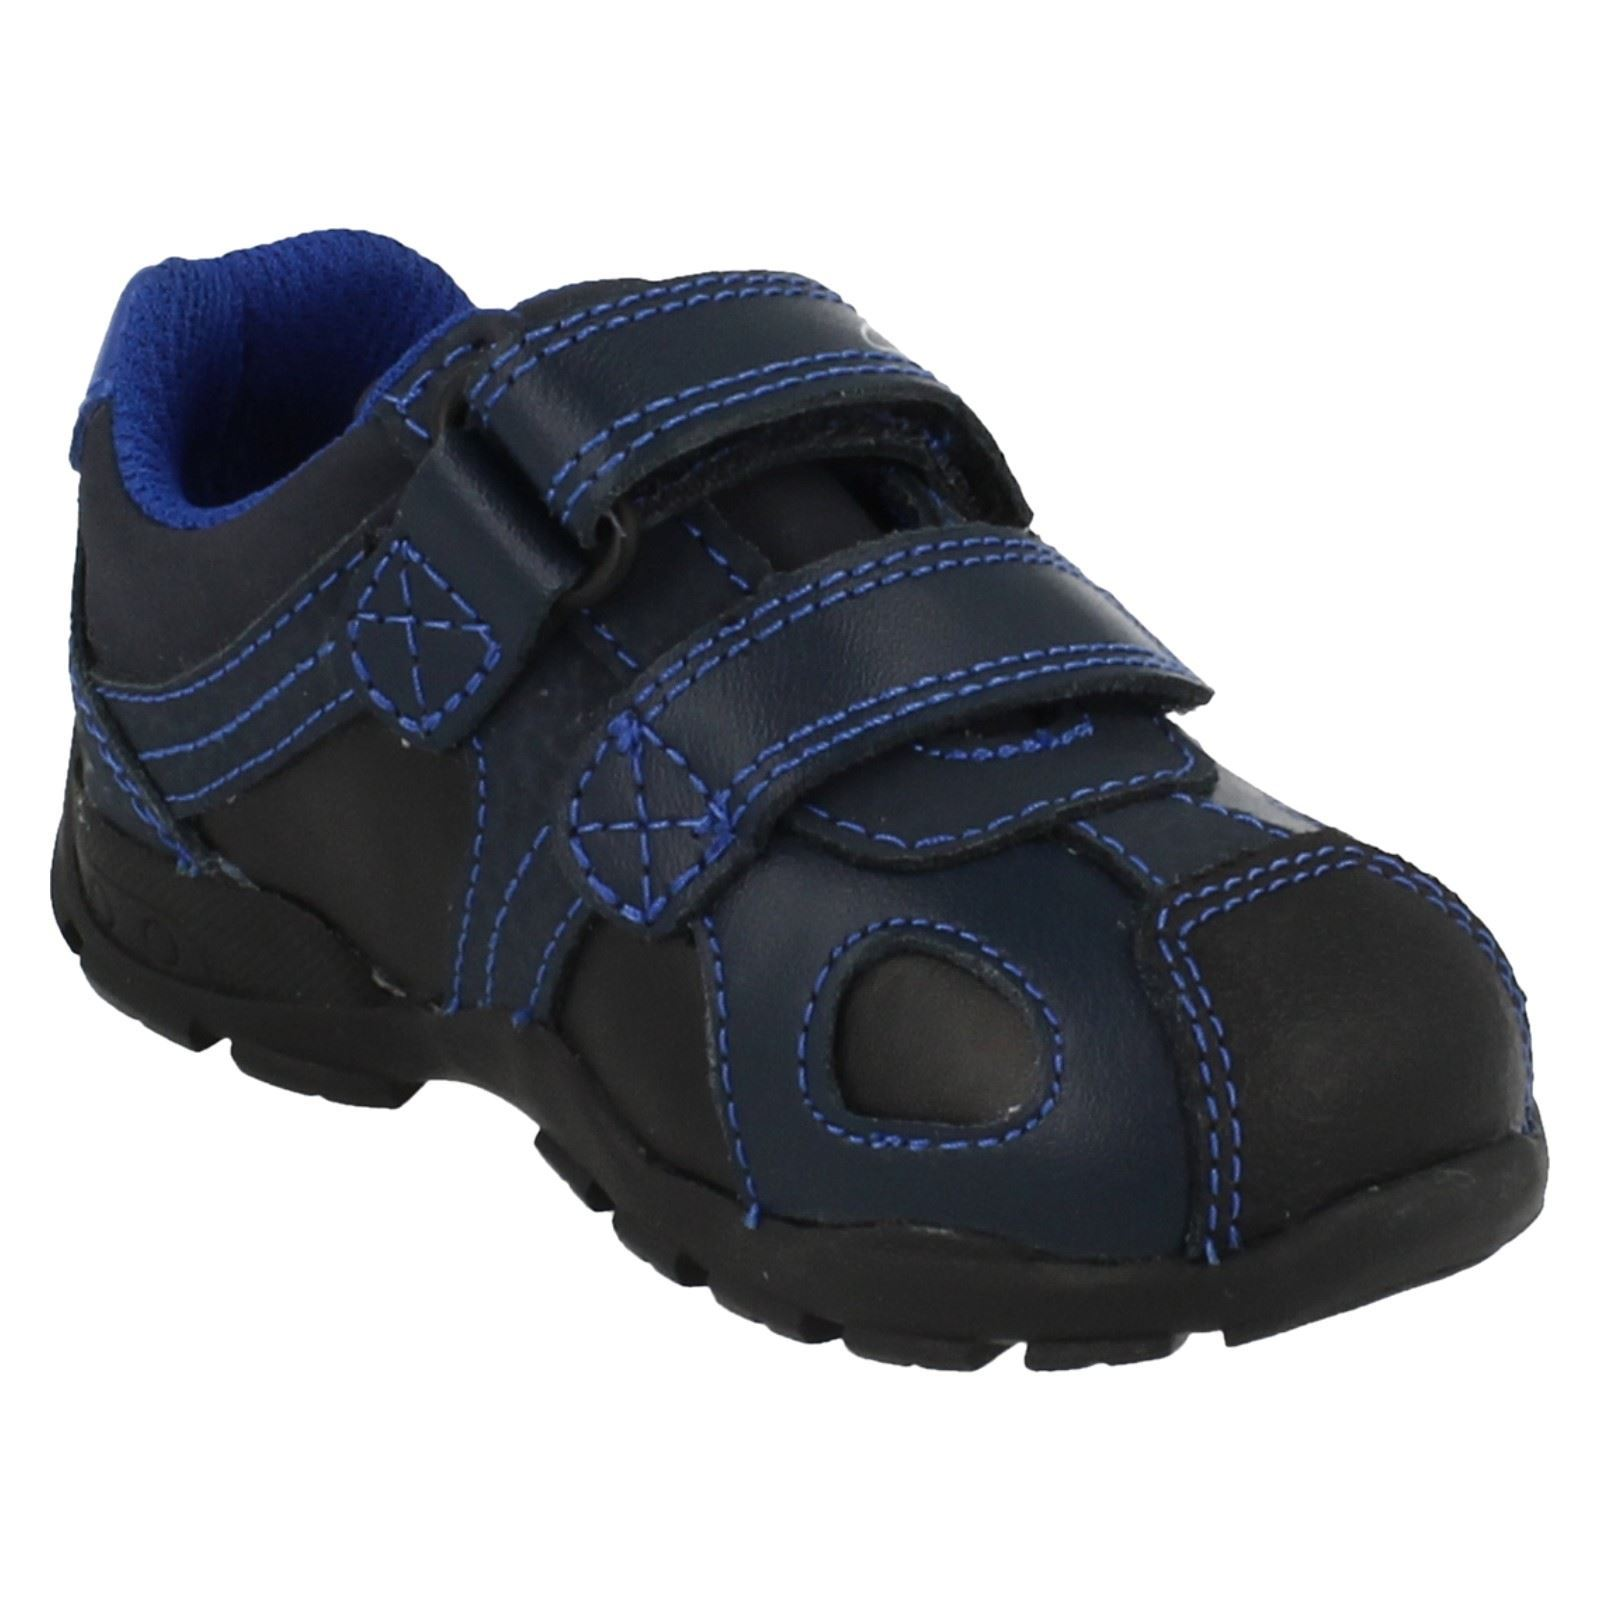 Clarks Boys Light Up Walking Shoes - Brite Time